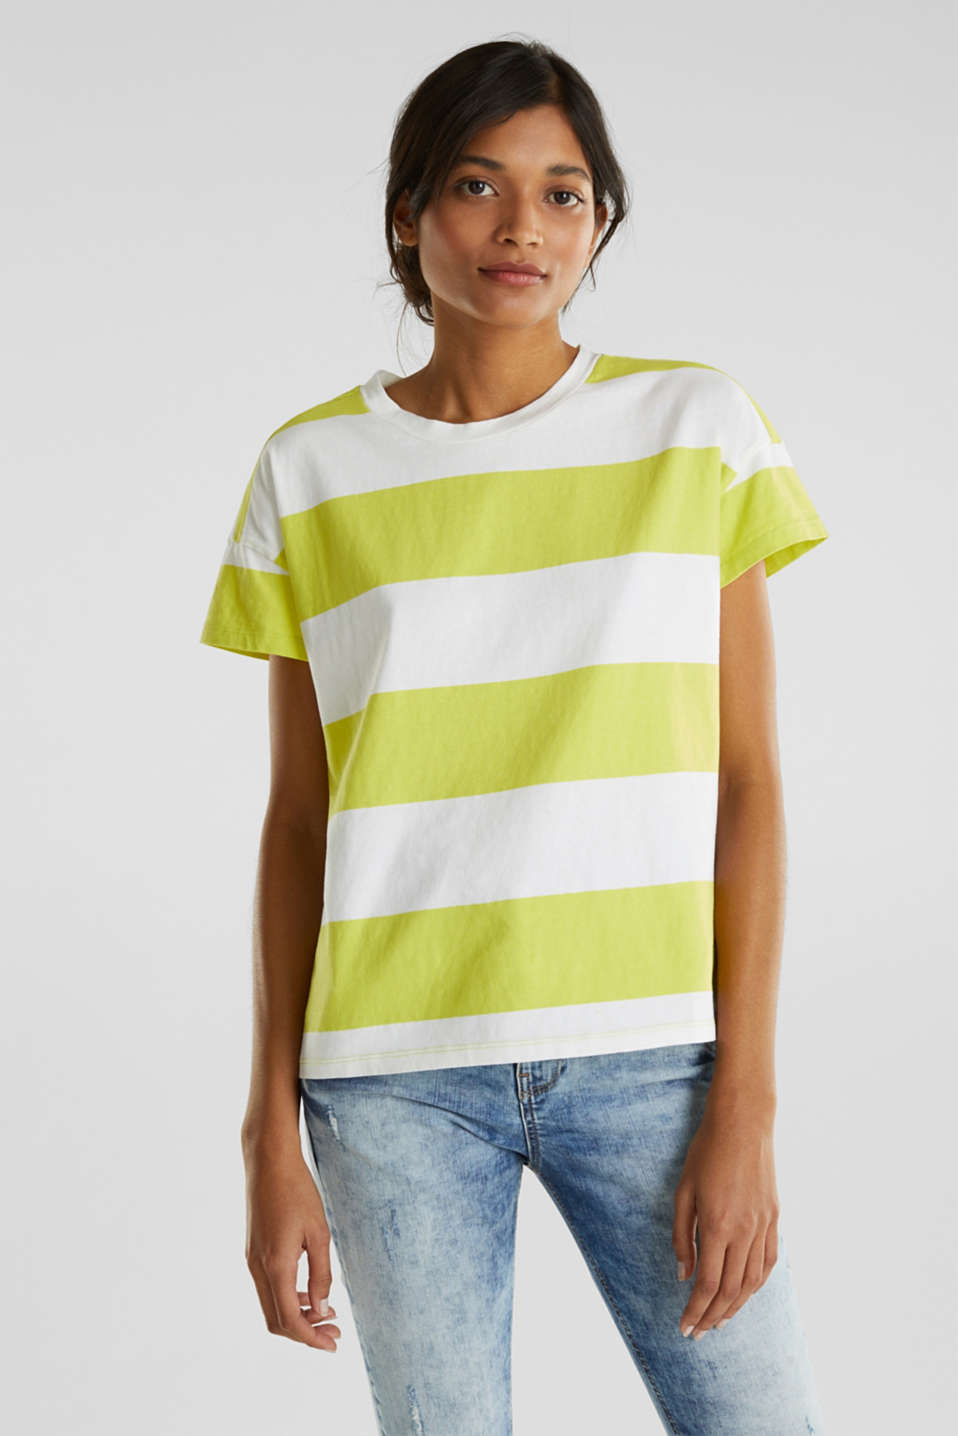 edc - T-shirt with block stripes, 100% cotton